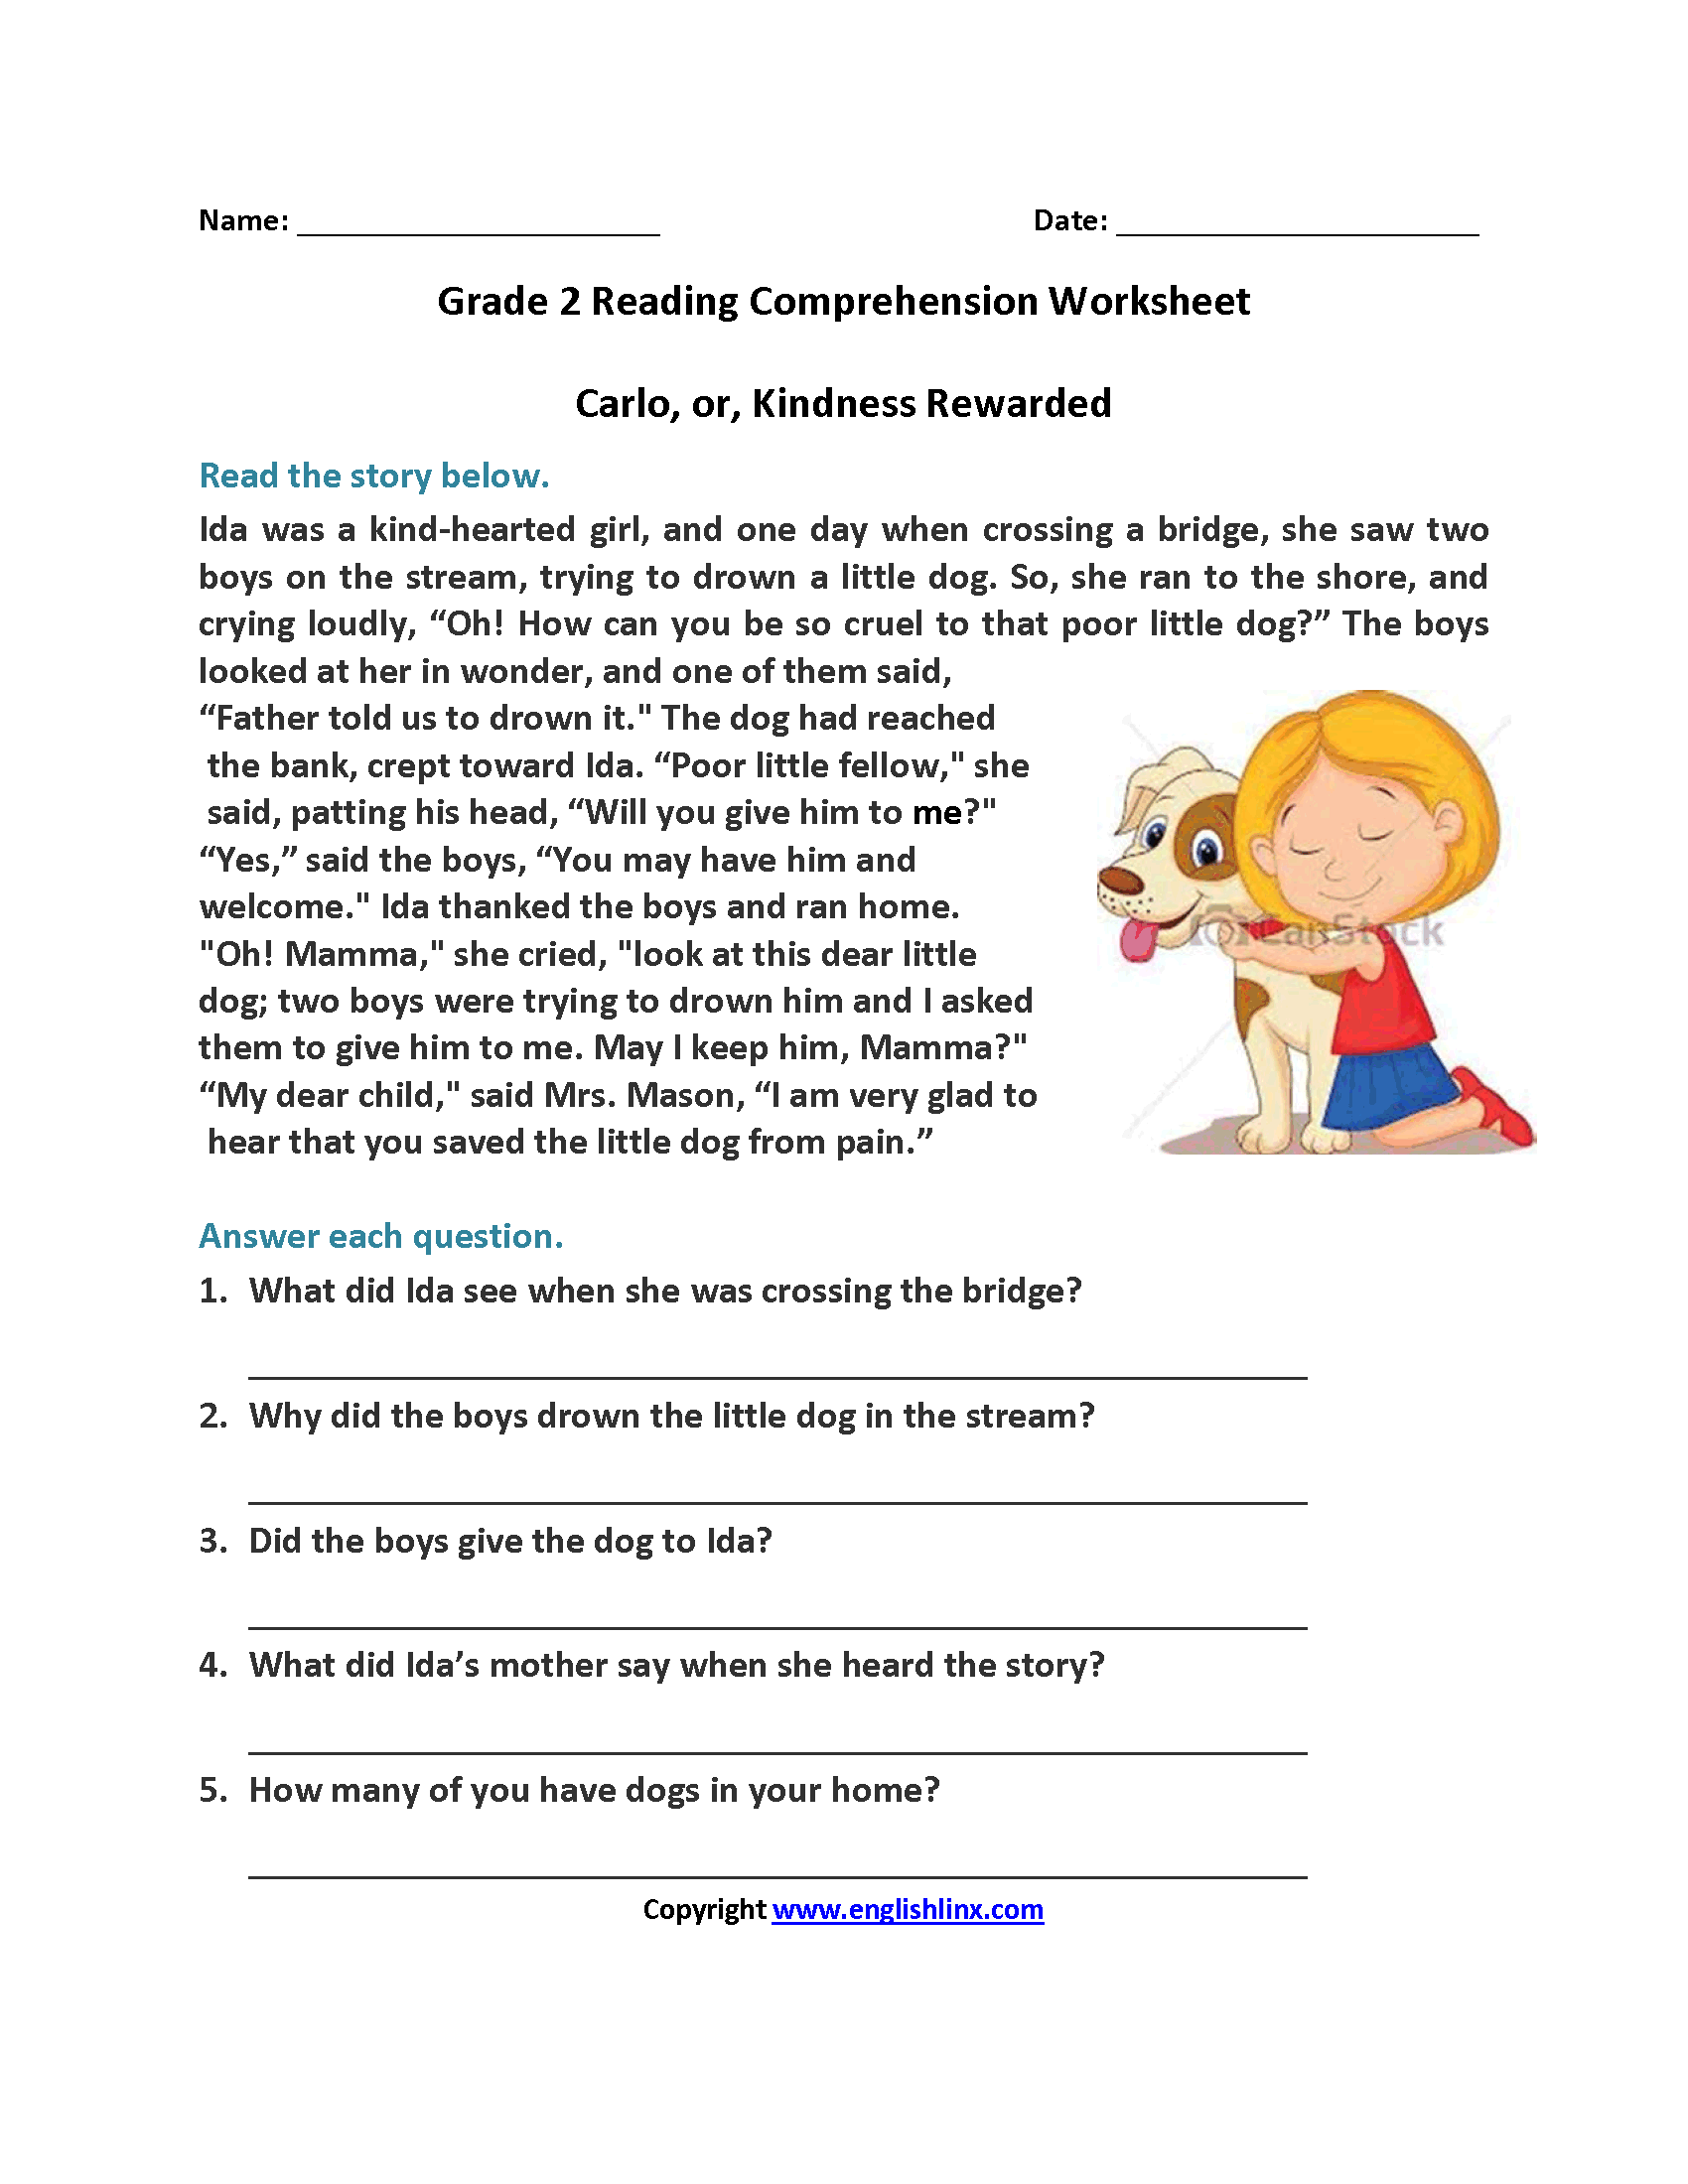 Carlo or Kindness Rewarded Second Grade Reading Worksheets | reading ...